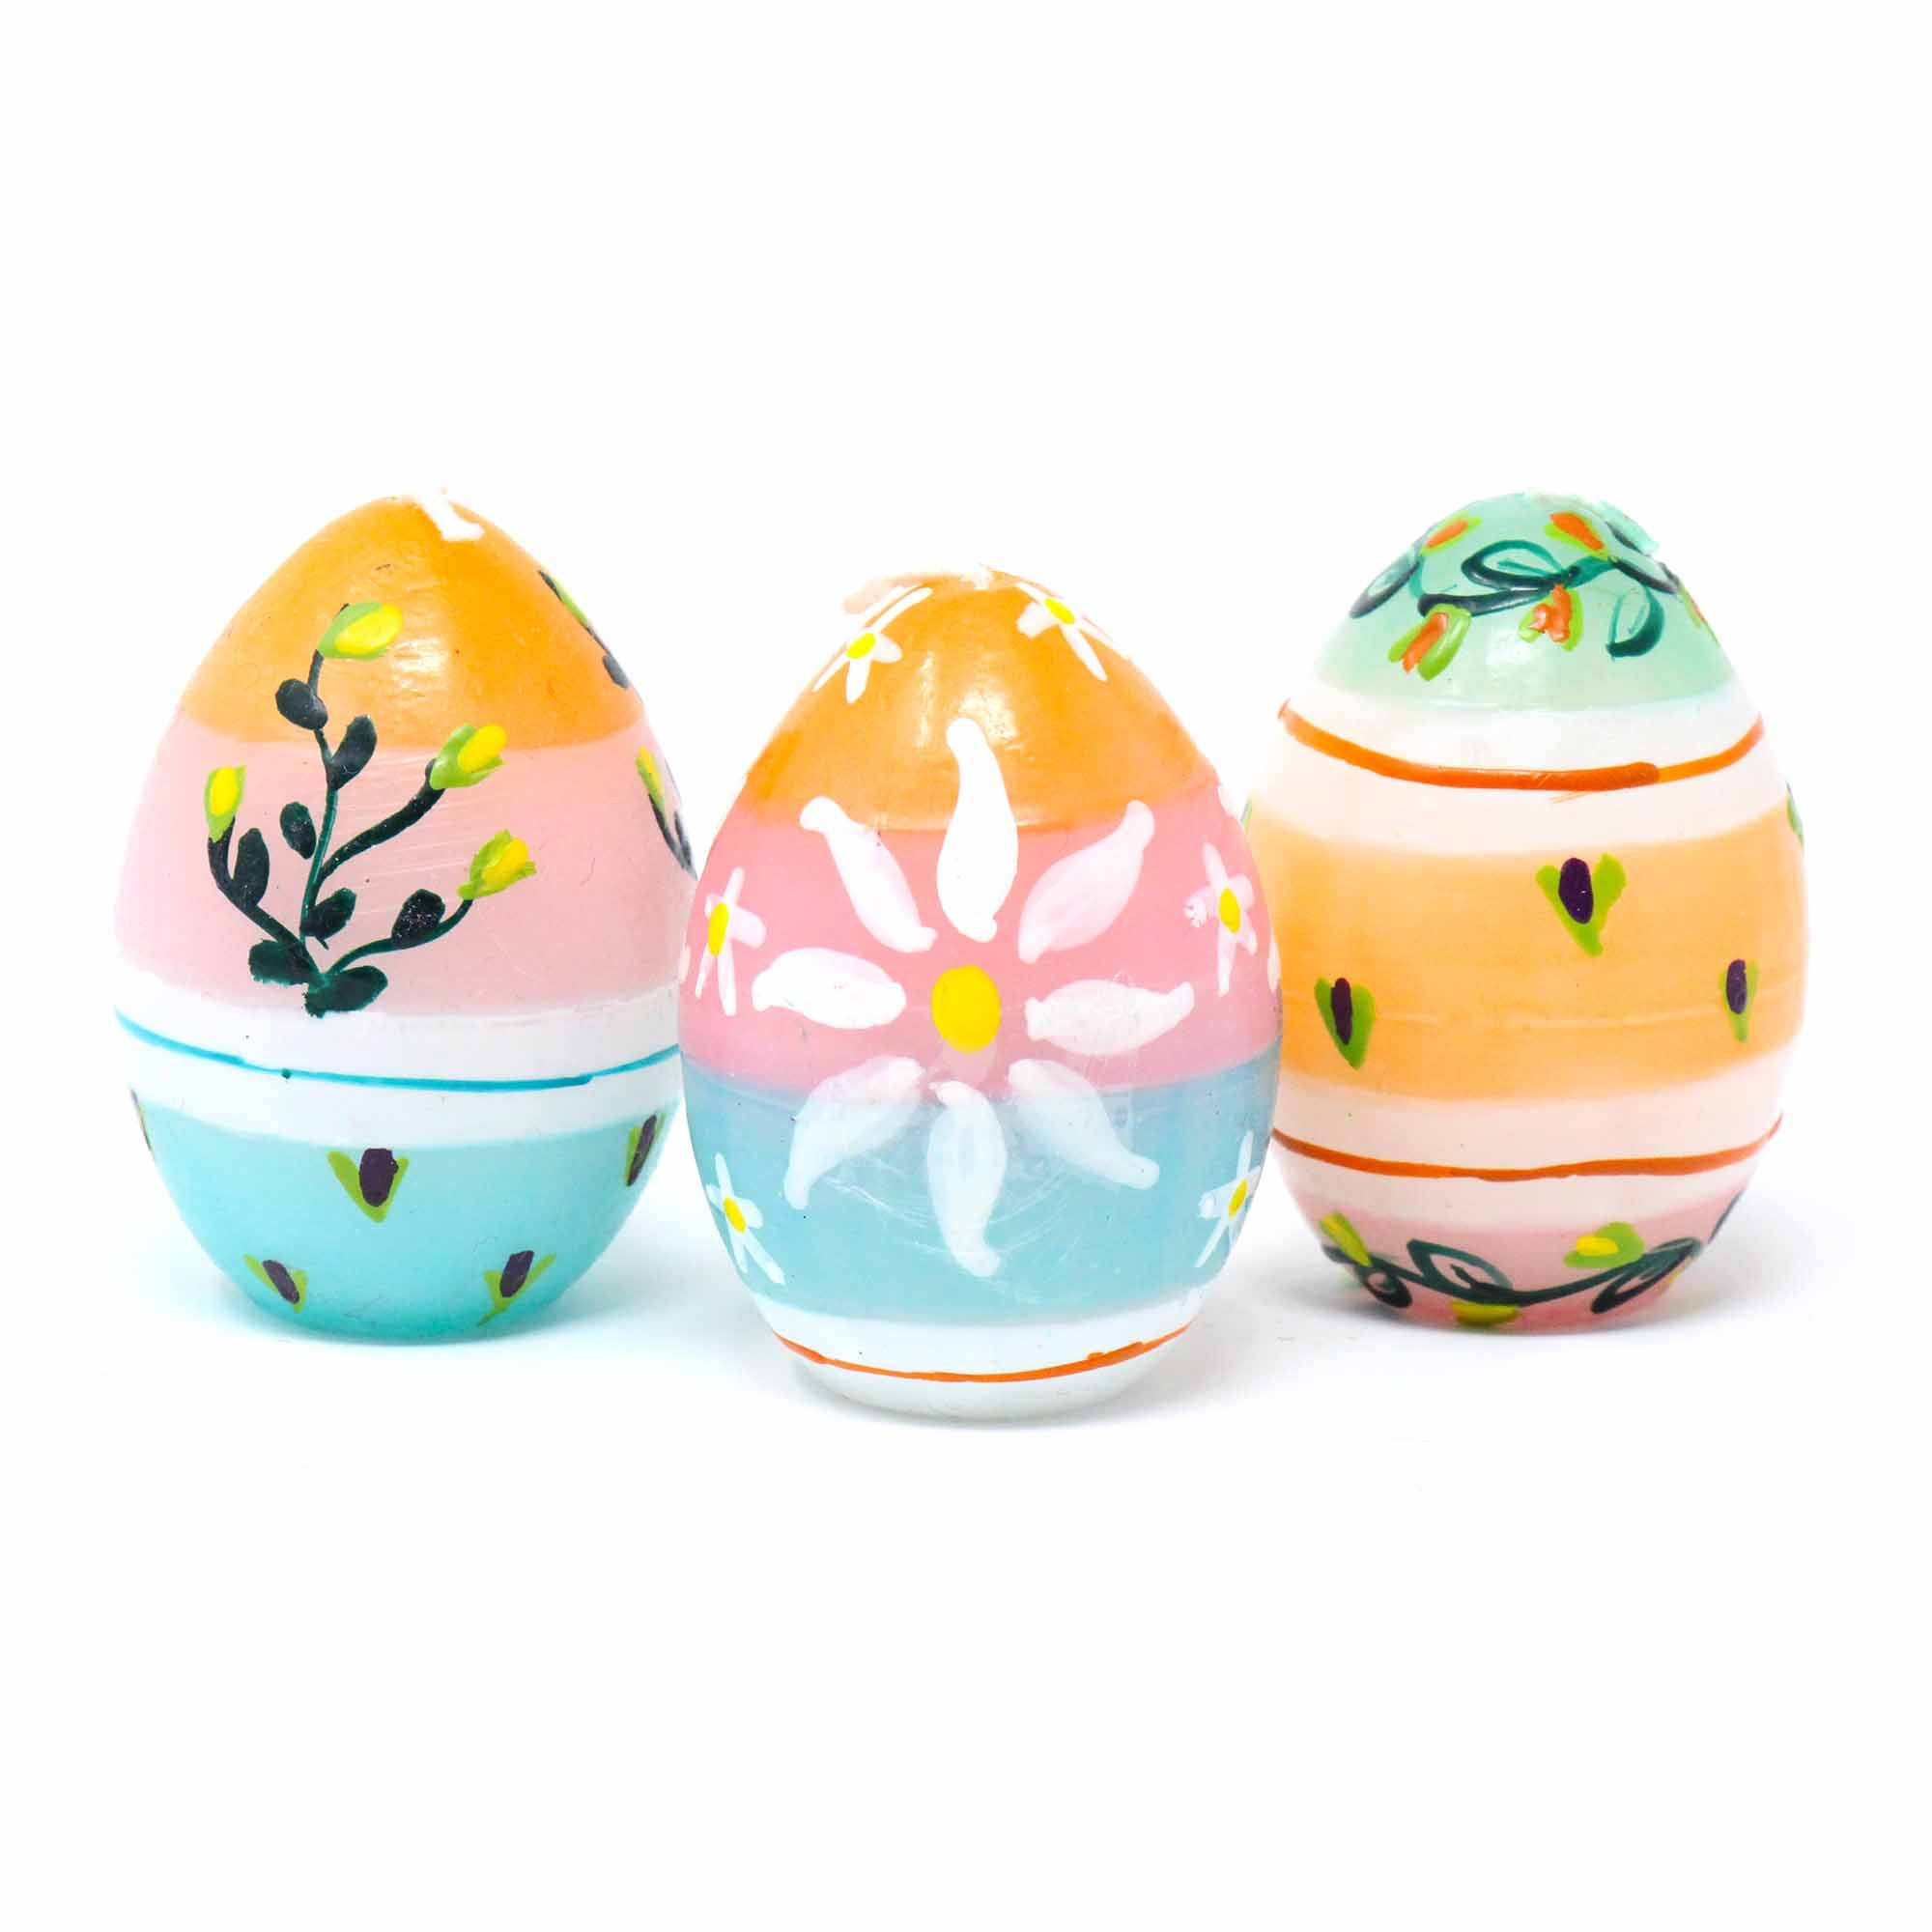 Unscented Hand-Painted Oval Votive Candles, Boxed Set of 3 (Imbali Design)